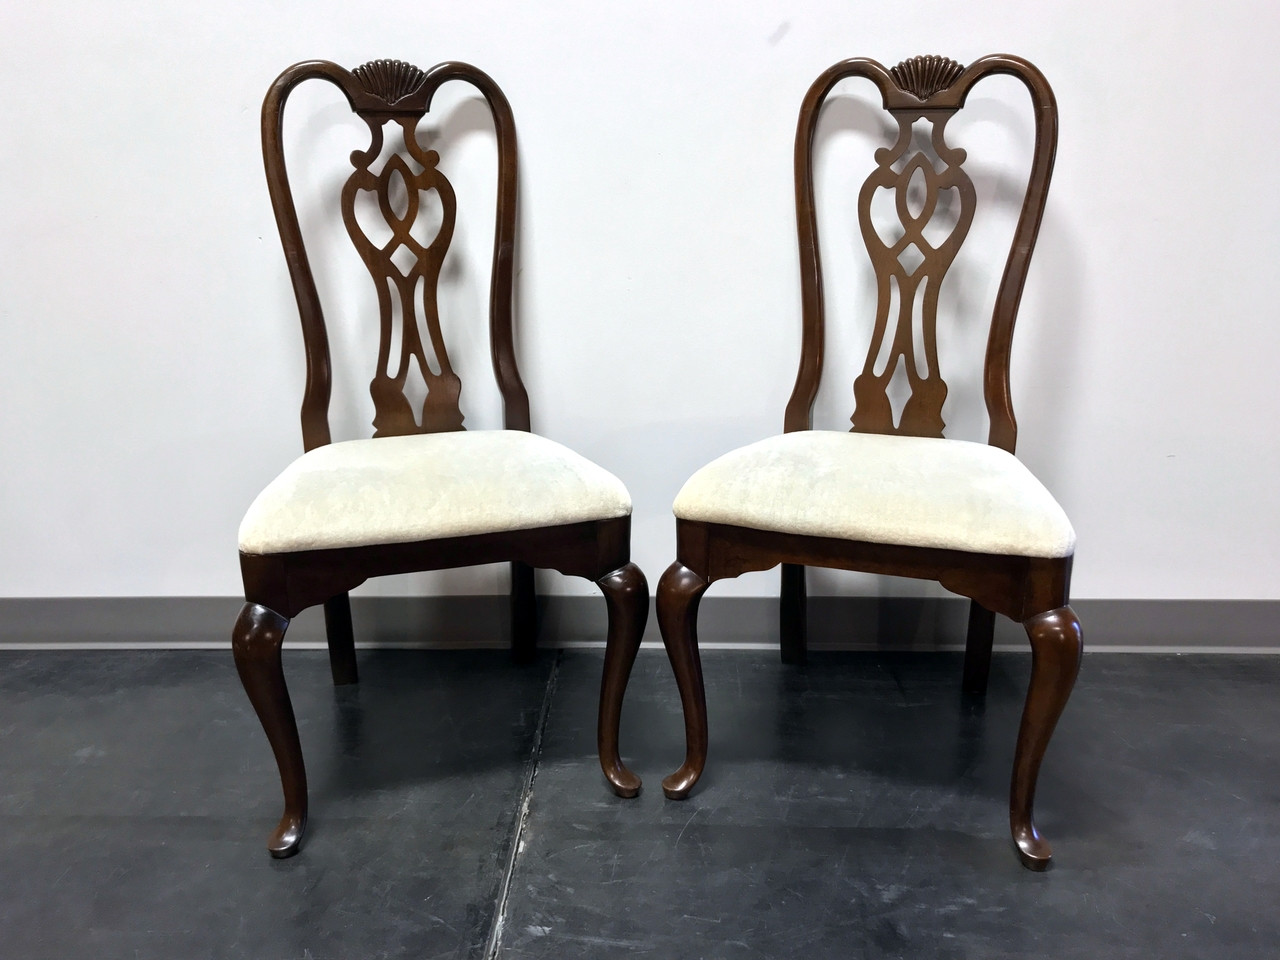 SOLD OUT - THOMASVILLE Cherry Queen Anne Style Dining Side Chairs - Pair 1